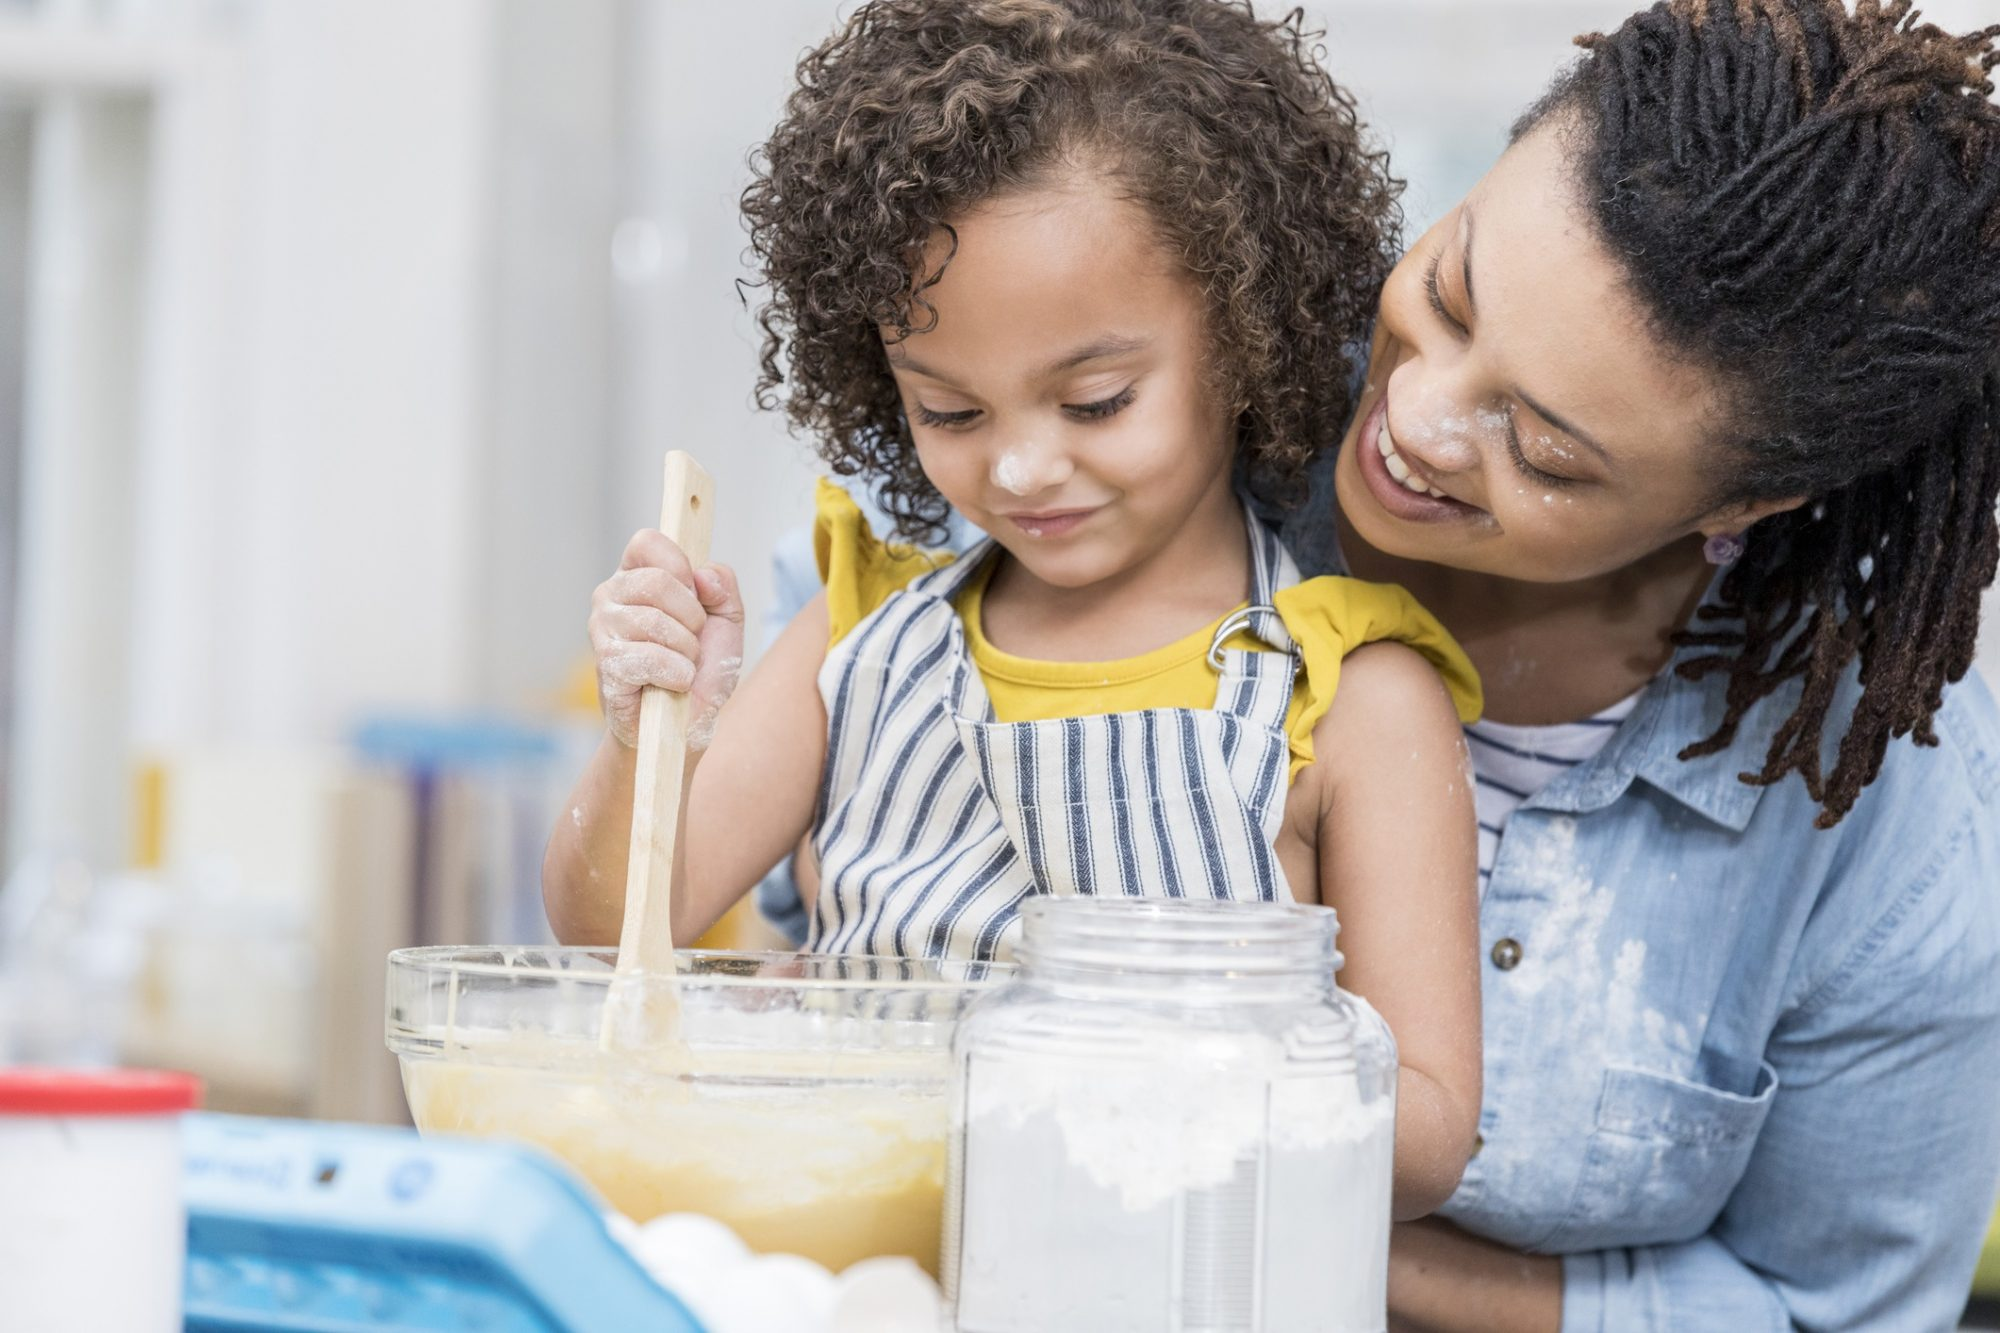 mother and daughter working on a baking project together